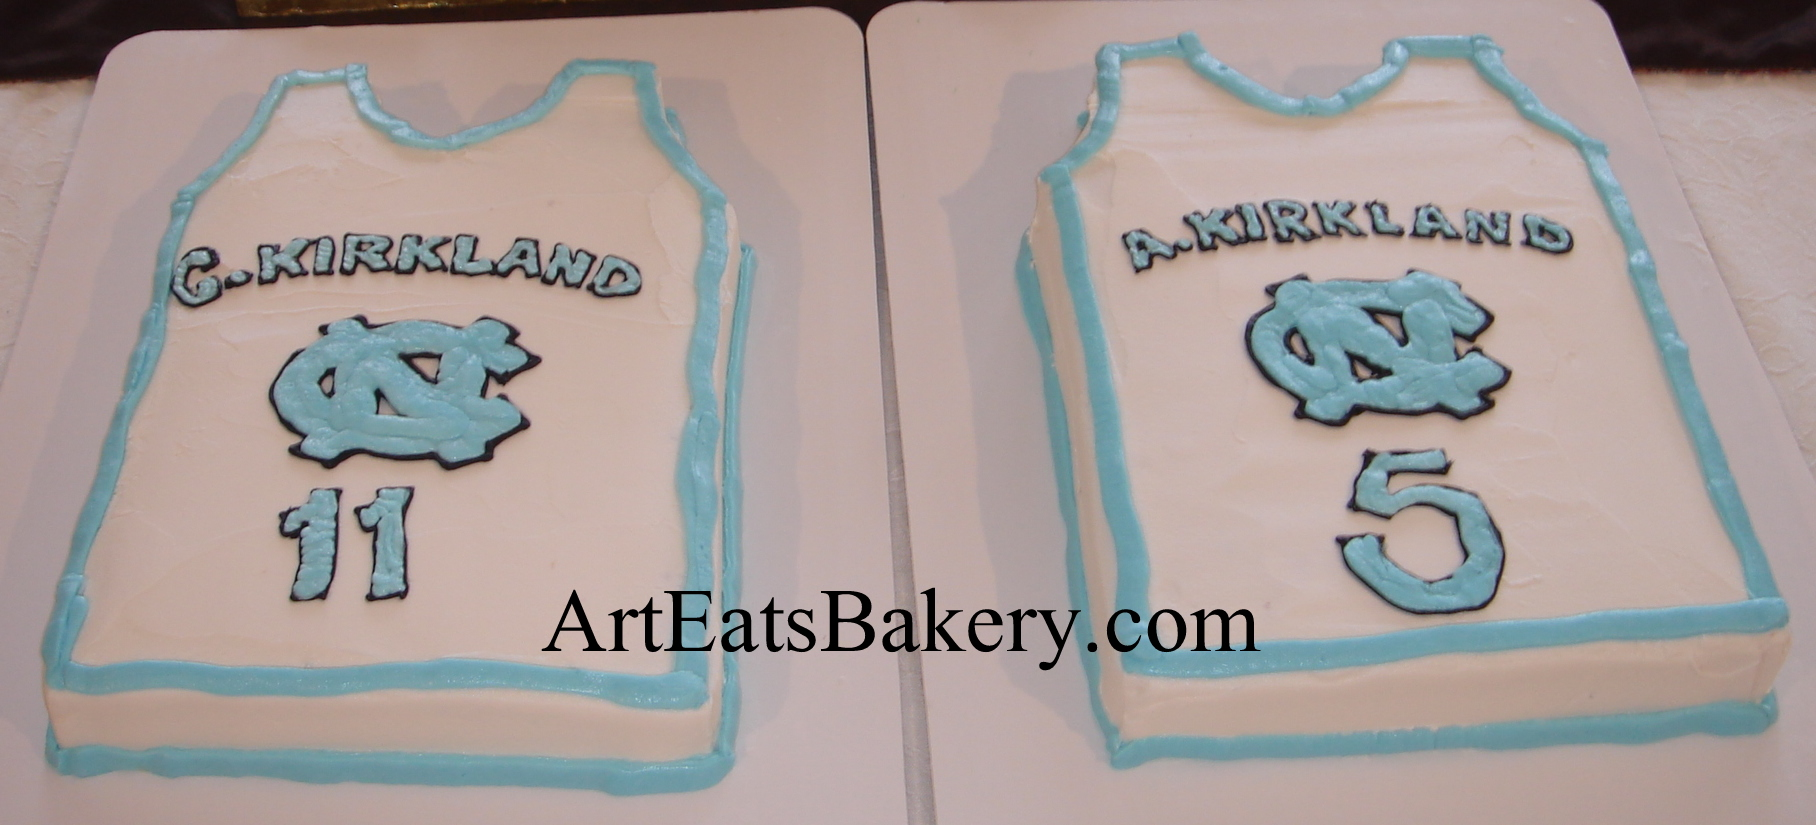 University of North Carolina basketball jersey custom twin birthday cakes..jpg